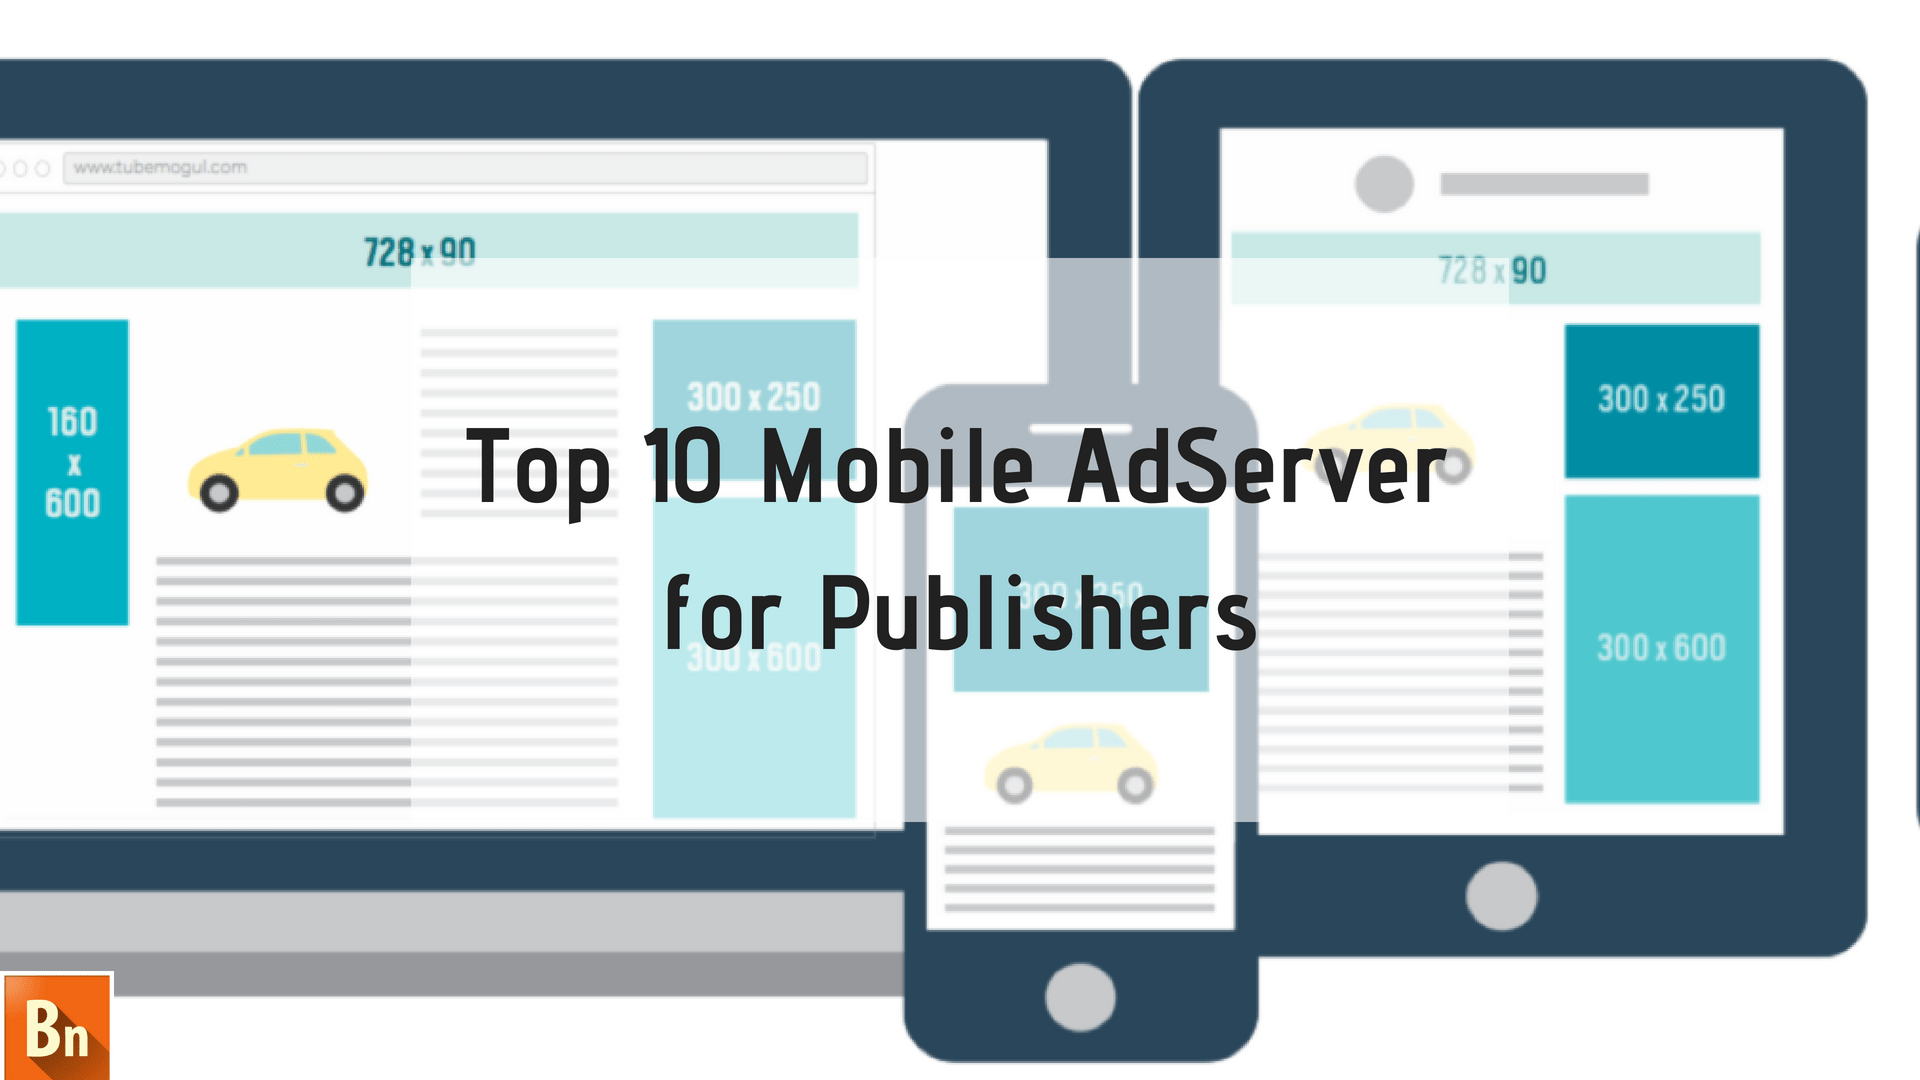 Top 10 Mobile AdServer for Publishers